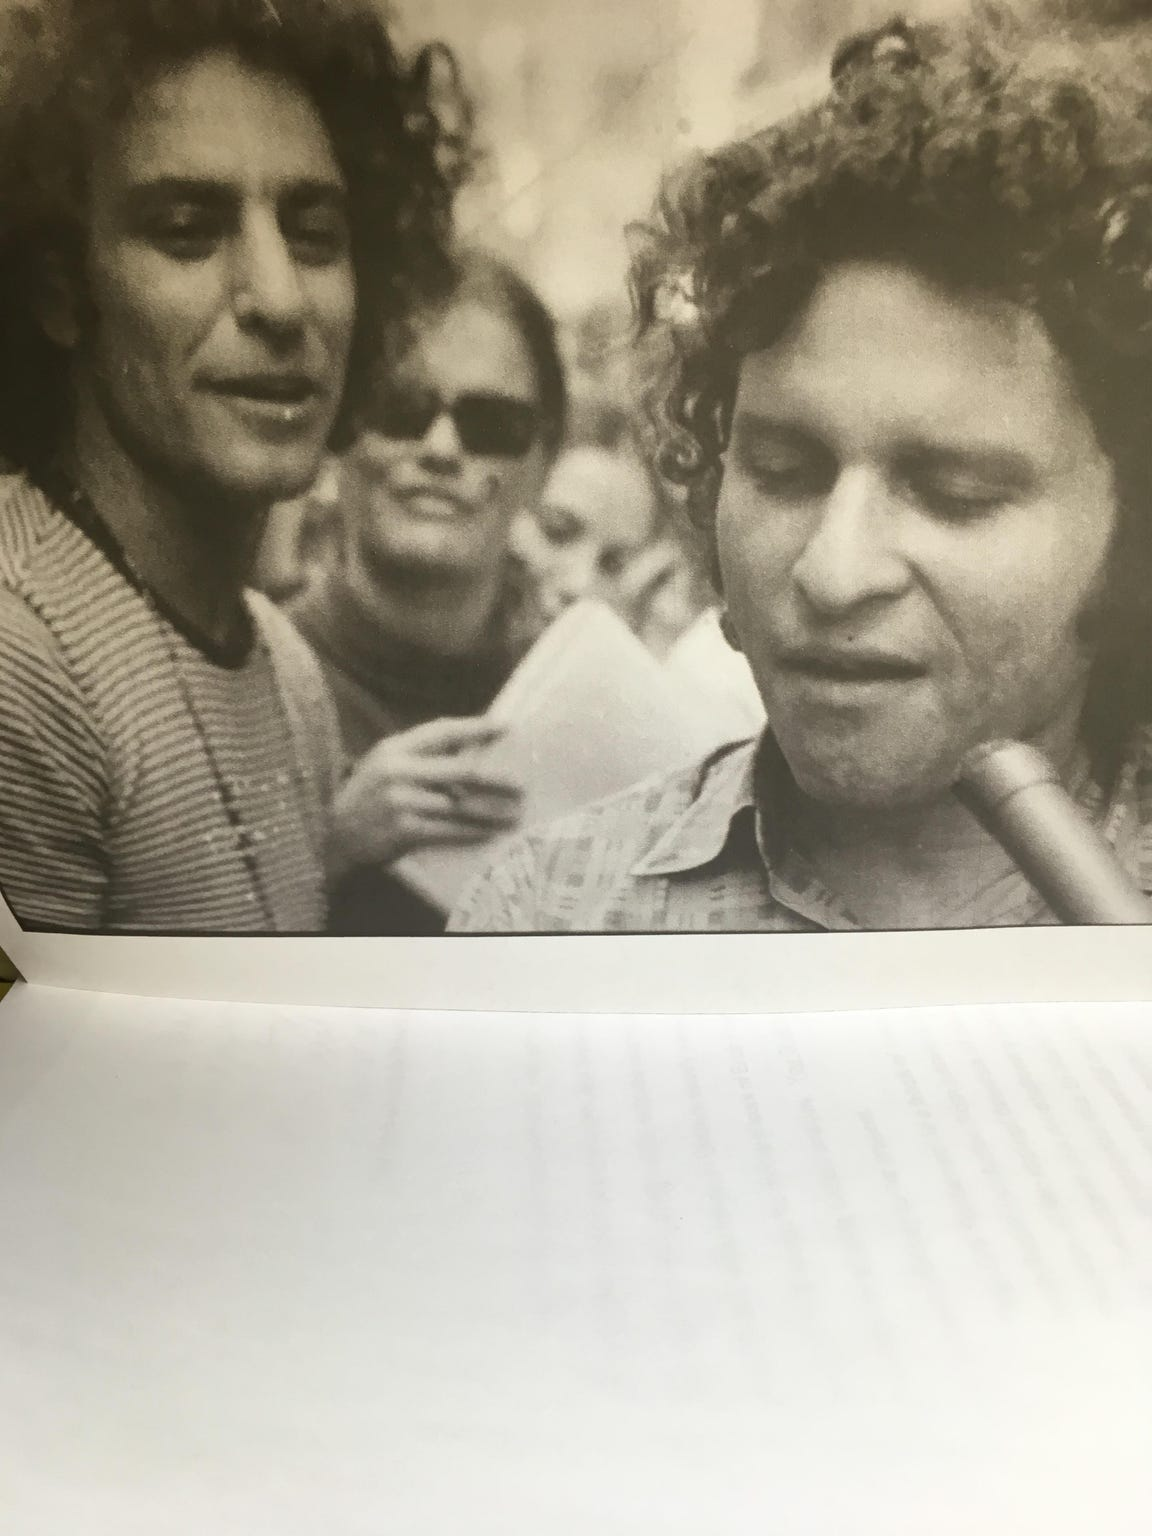 Abbie Hoffman (left) and Paul Krassner address a crowd at the 1968 Chicago Democratic National Convention.